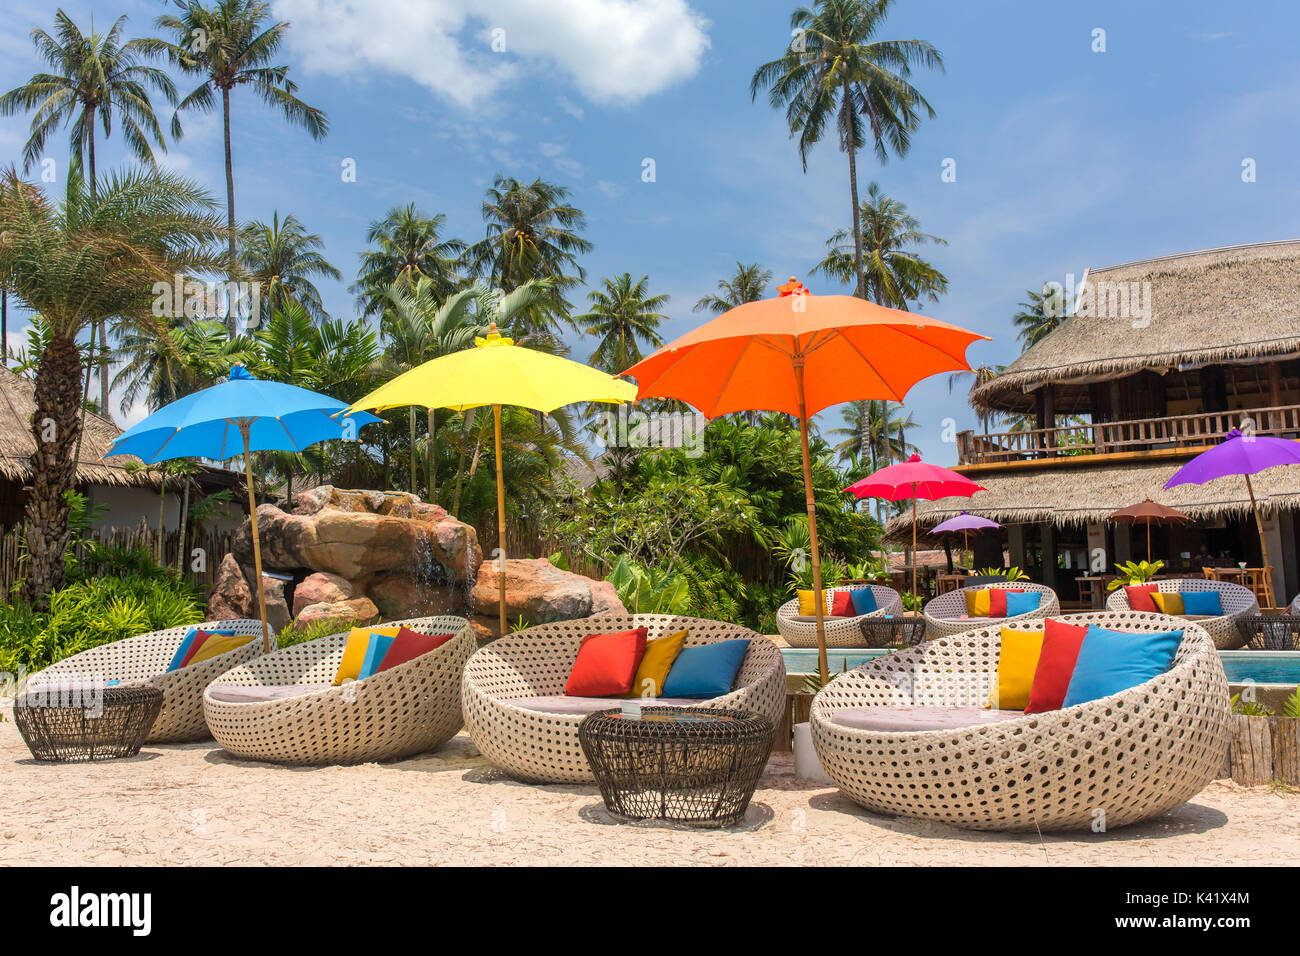 Tropical resort with a swimming pool and cafe bar on Koh Kood island, thailand - Stock Image